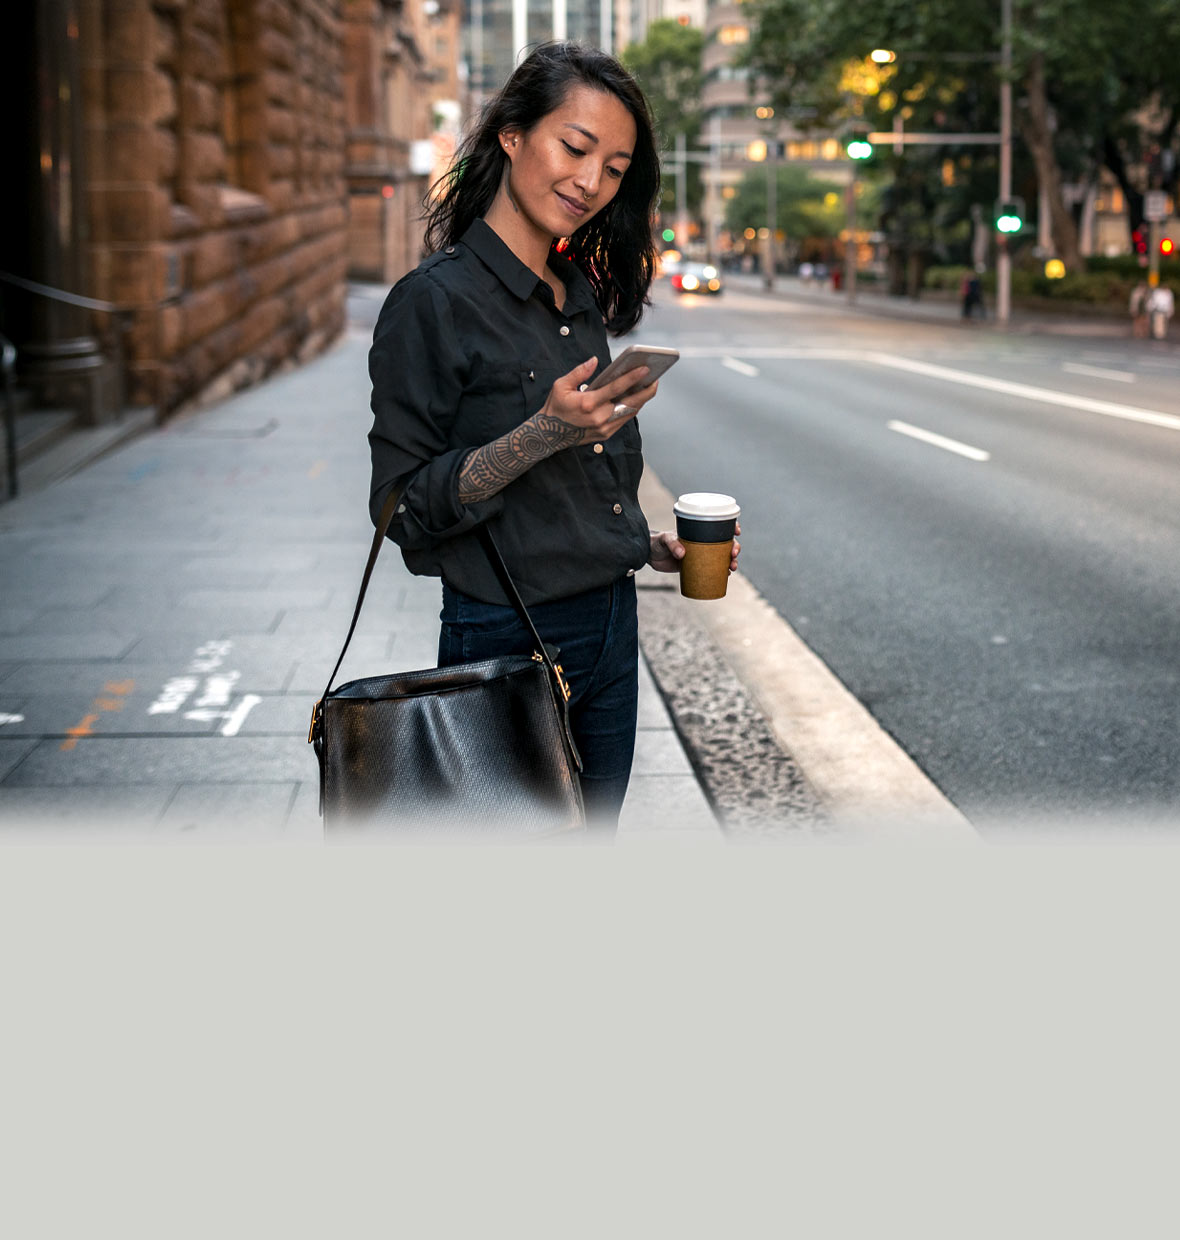 Woman standing on the kerb in a city about to cross the road, getting a phone notification